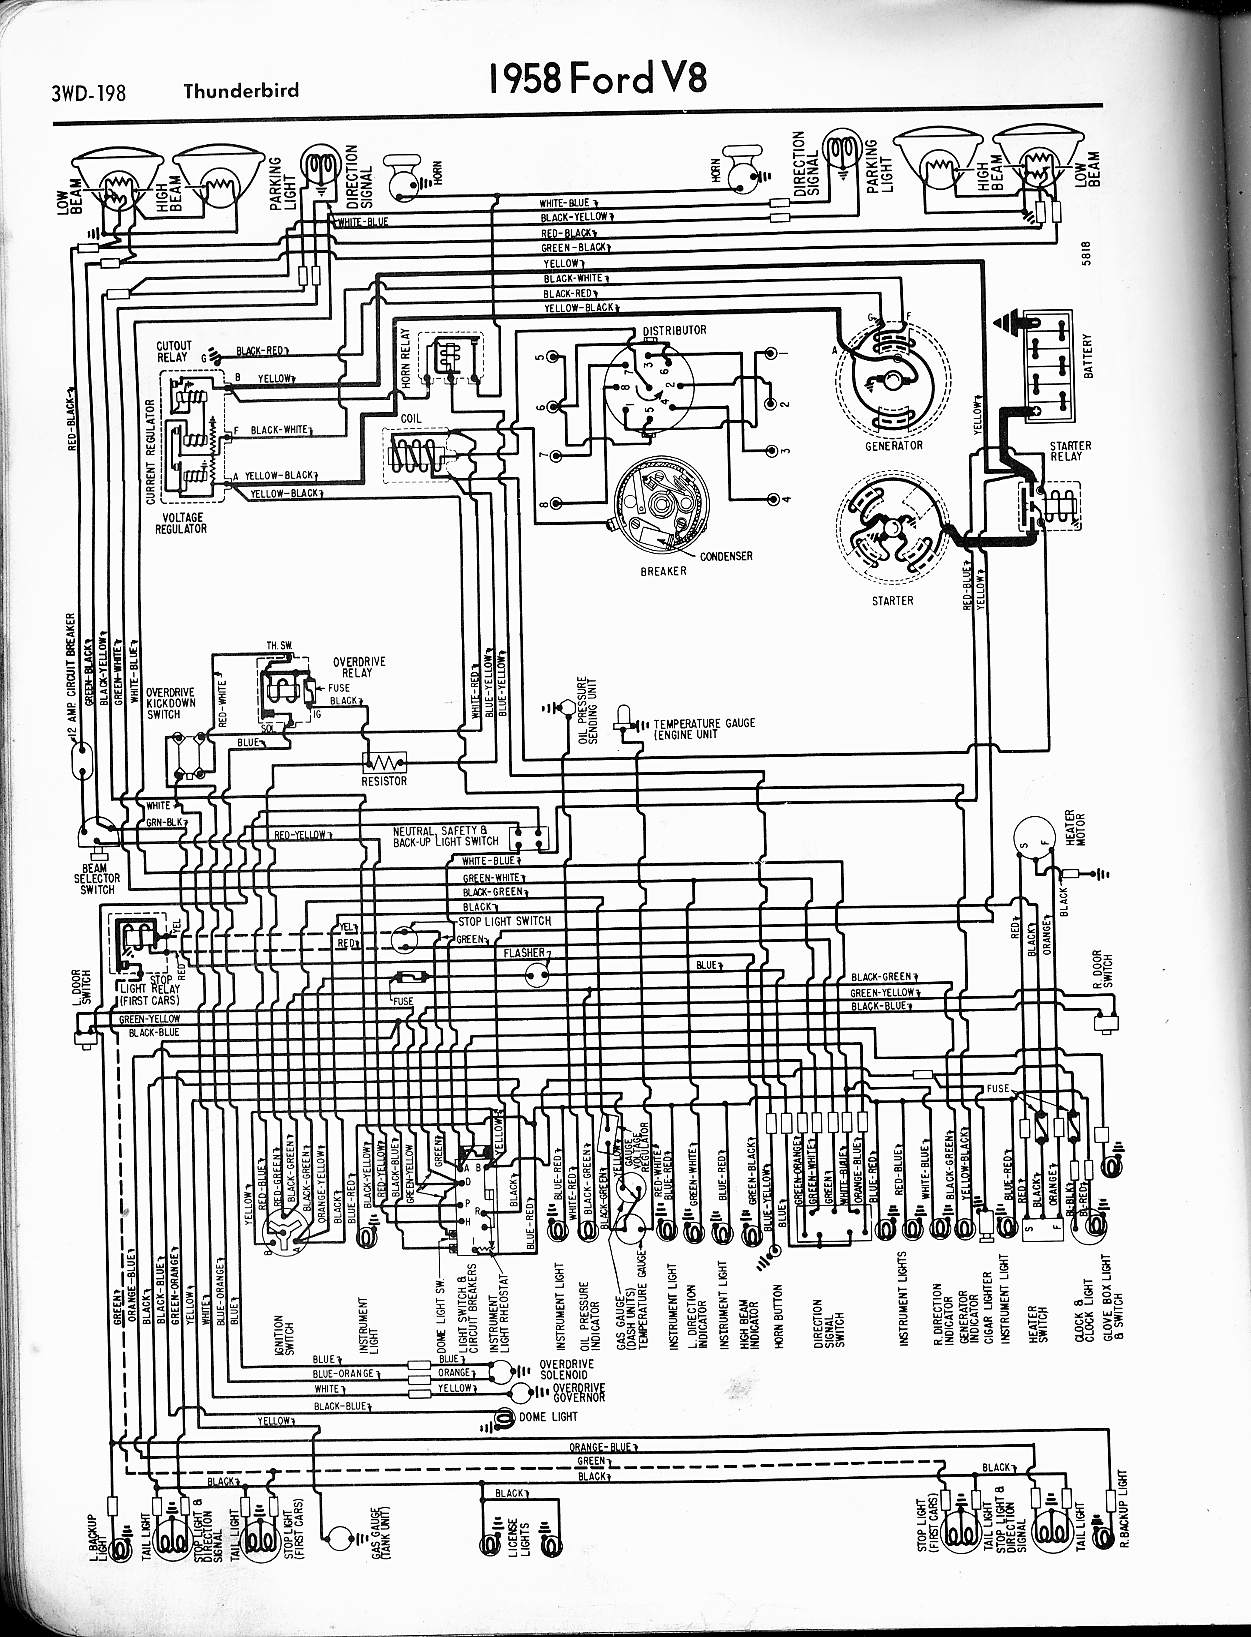 wiring diagrams for 1987 ford thunderbird schematic diagram 59 Chevy Truck Wiring Diagram wiring diagrams for 1987 ford thunderbird wiring diagram 1987 ford f 250 wiring diagram 87